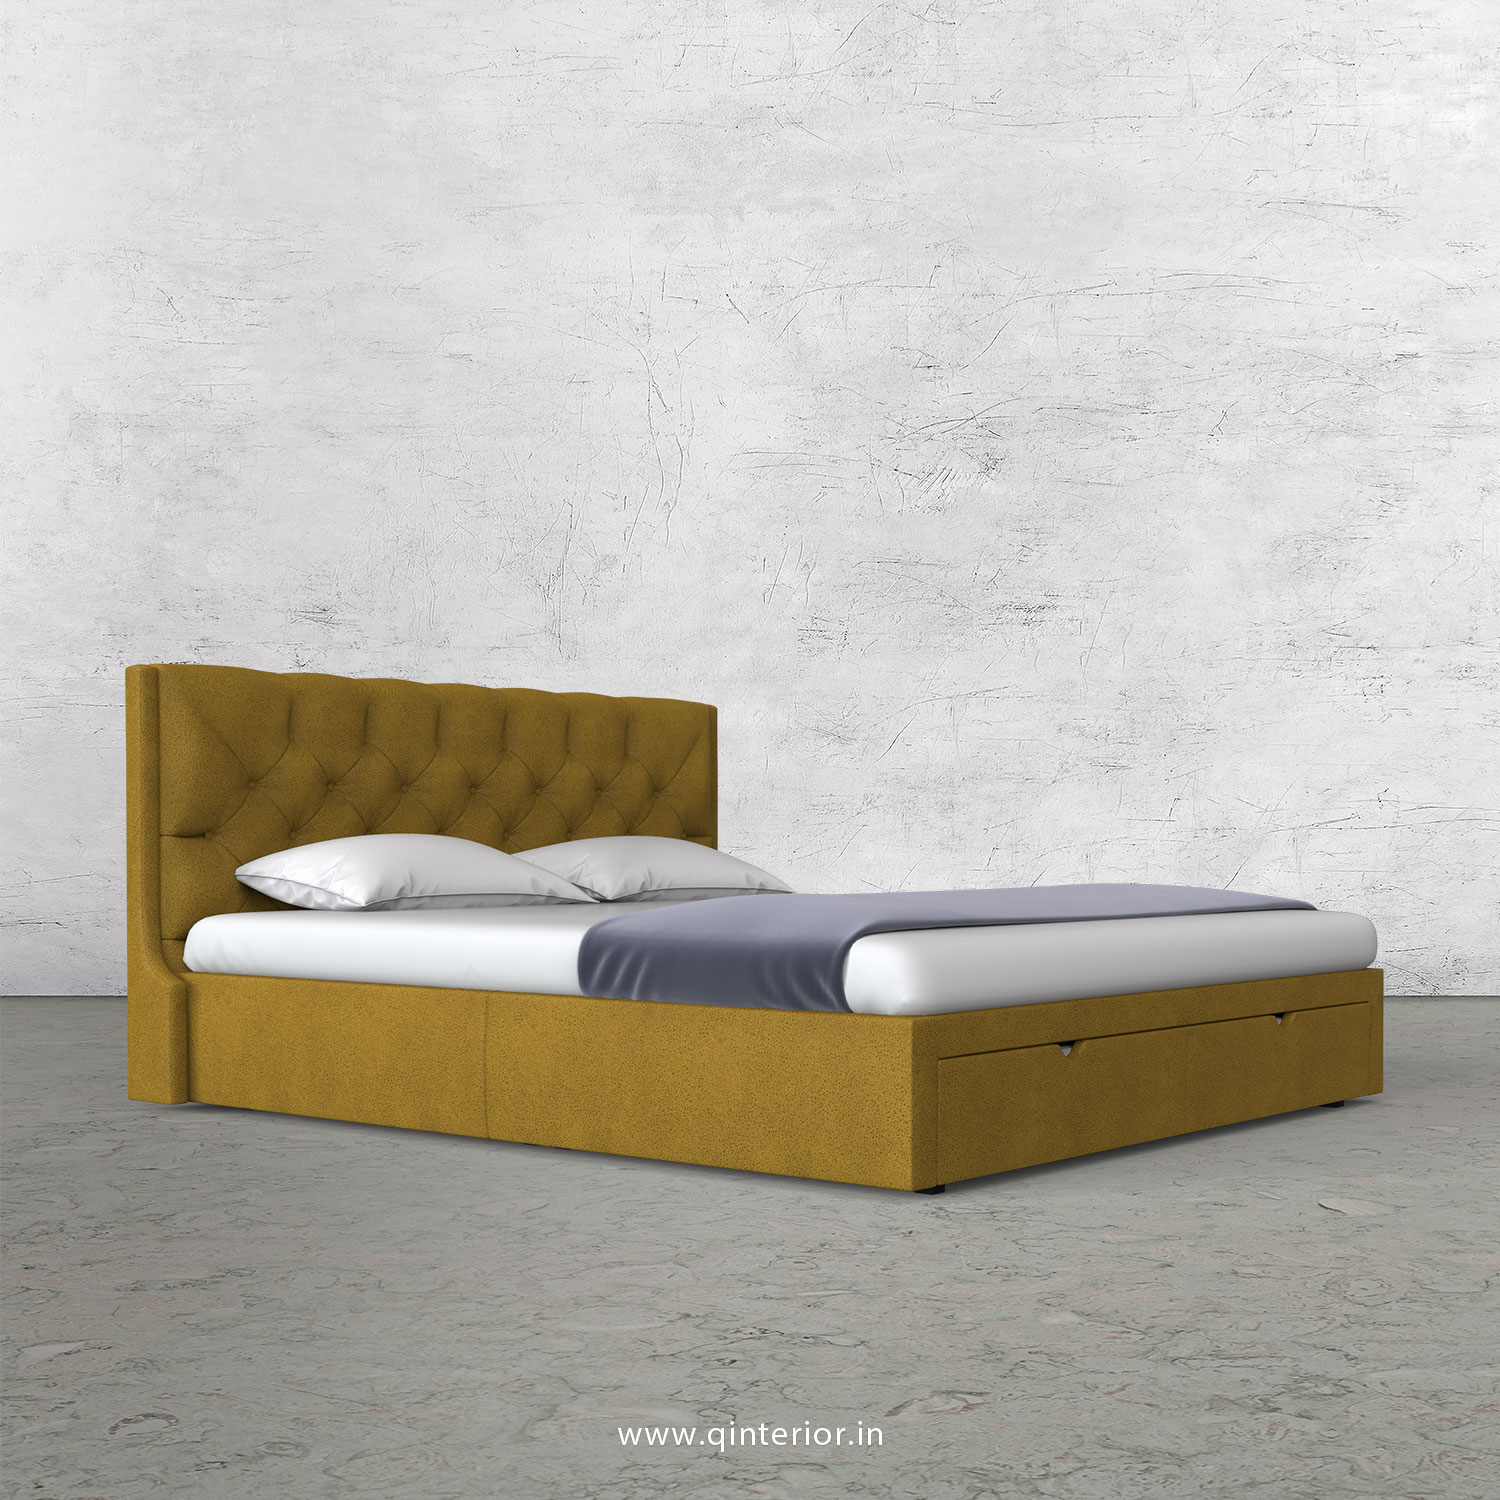 Scorpius Queen Storage Bed in Fab Leather Fabric - QBD001 FL18